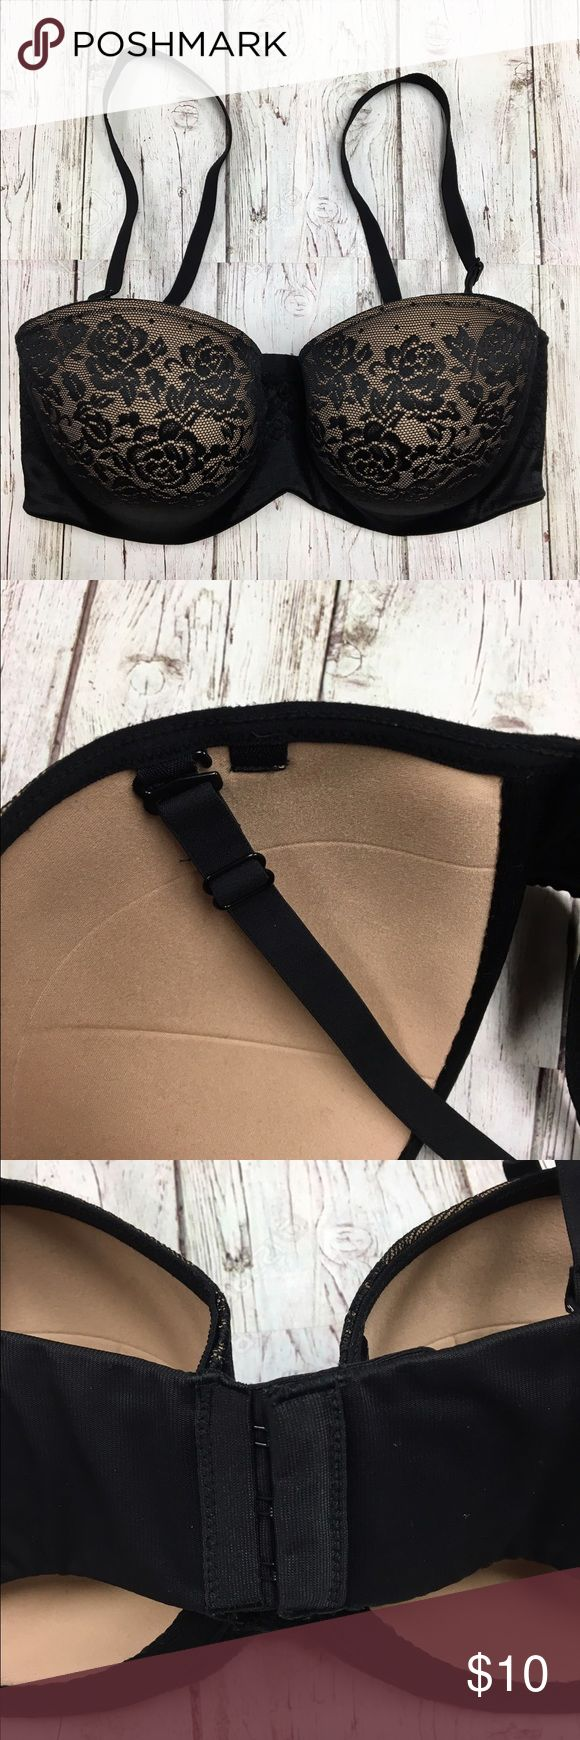 Soma Bra 32DDD Has been worn about 1 time. This bra is in a great condition! Looks brand new still. You will receive Bra washed and ready to wear. Most Soma bras is $30+ a bra in this style. This is an awesome deal to get a beautiful bra! Soma Intimates & Sleepwear Bras